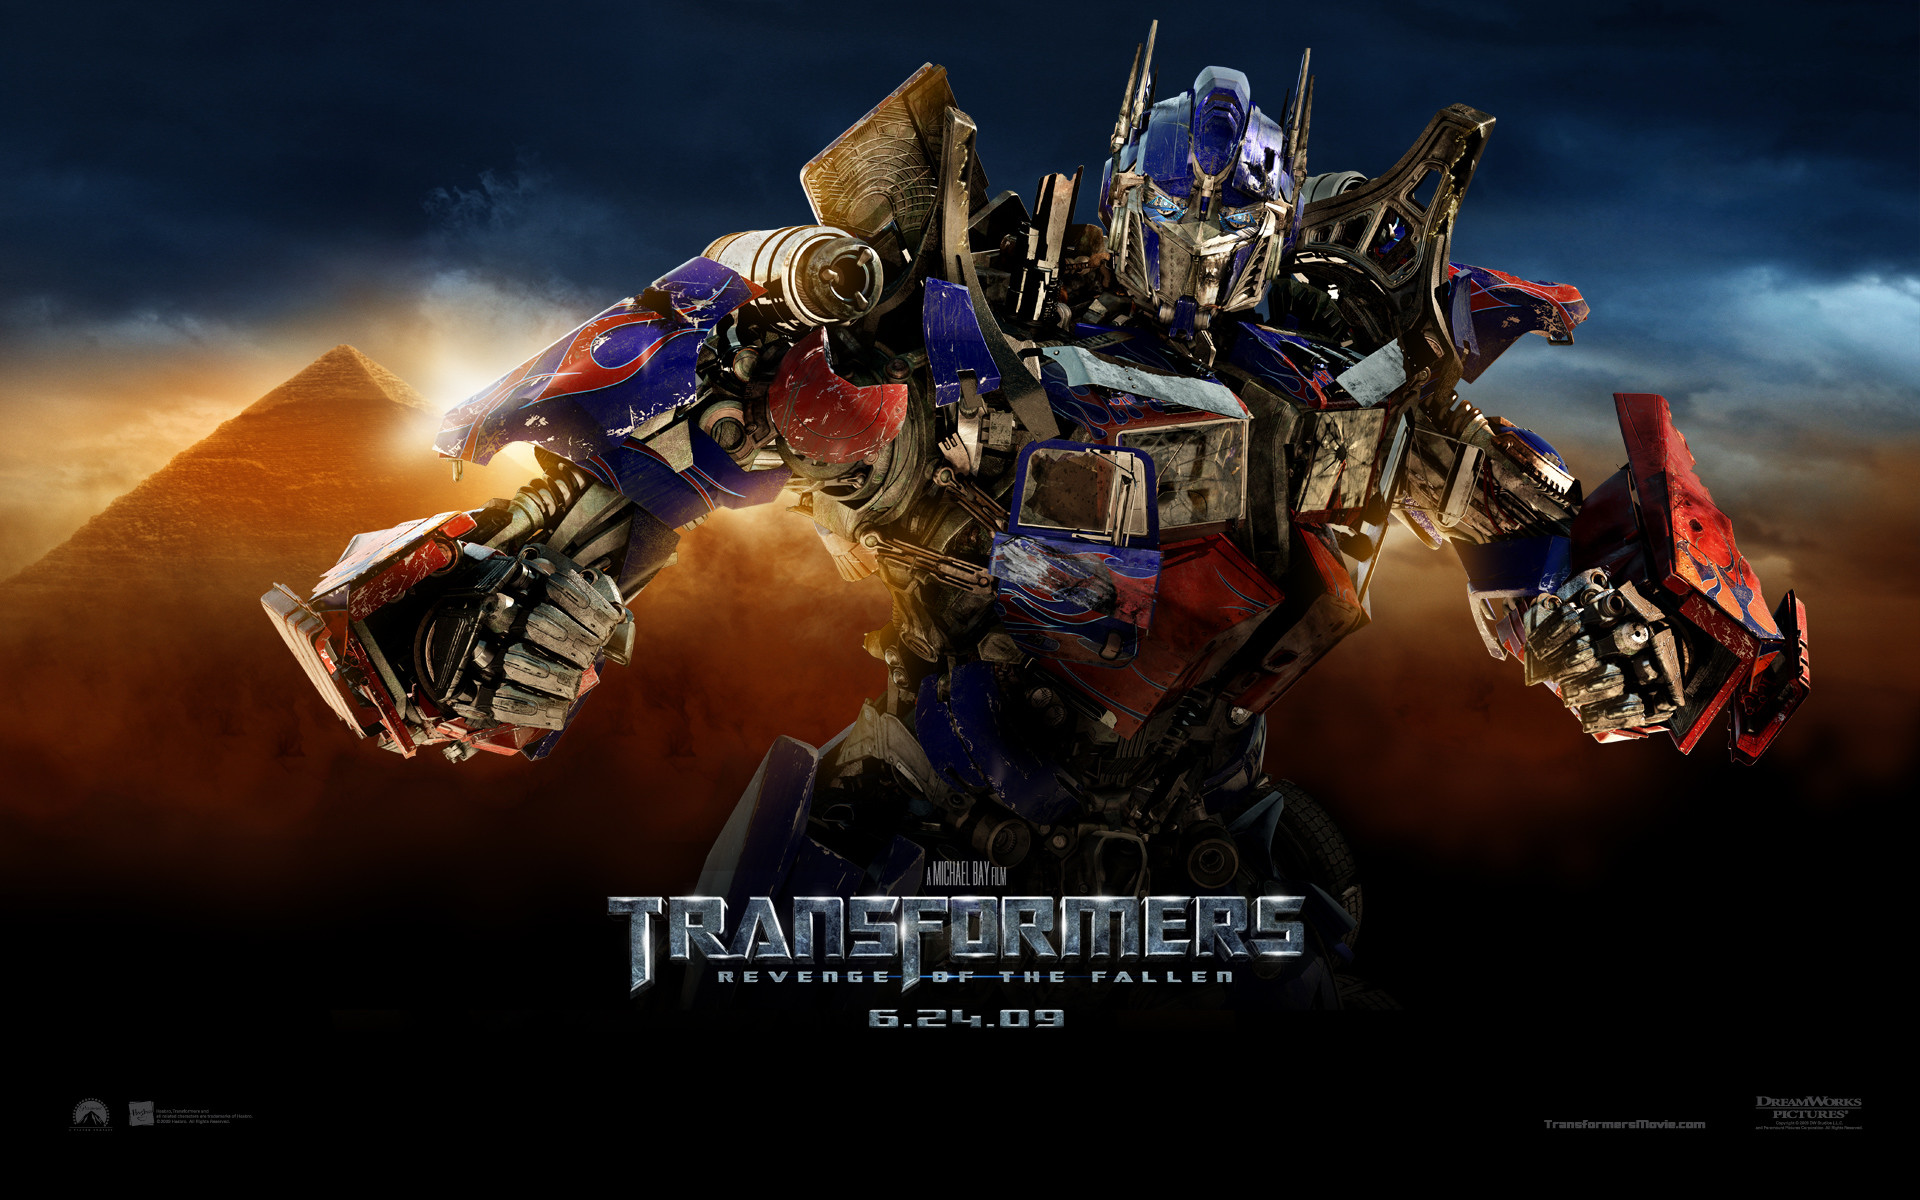 Res: 1920x1200, best, autobots, transformers, revenge of fallen